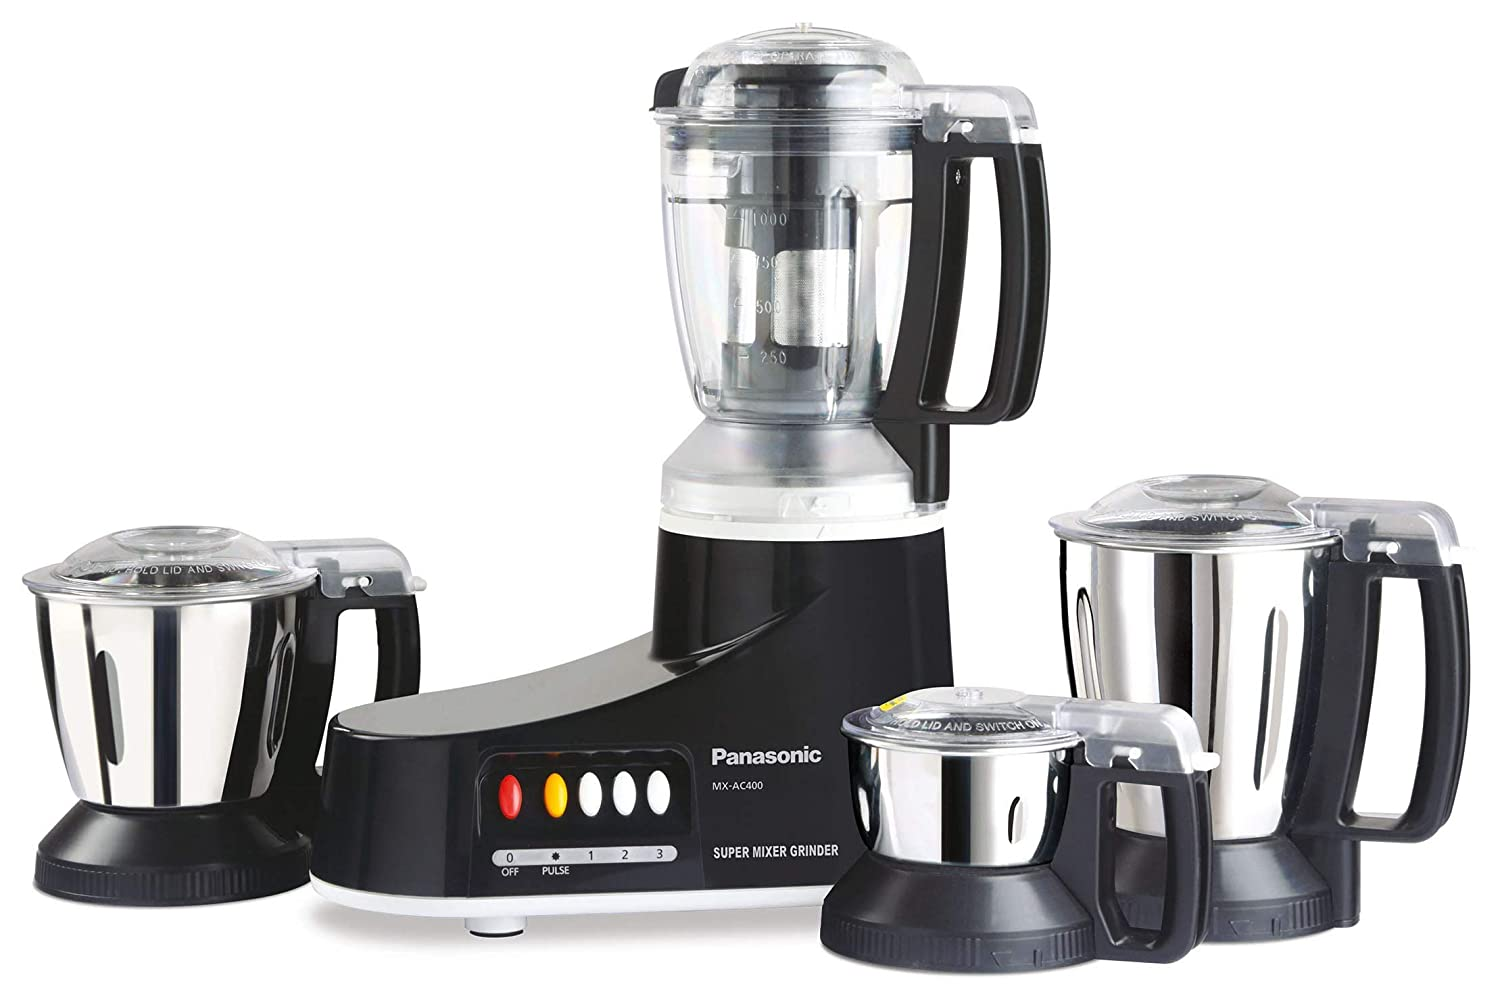 Best Mixer grinder in India (Juicer) 2020 1